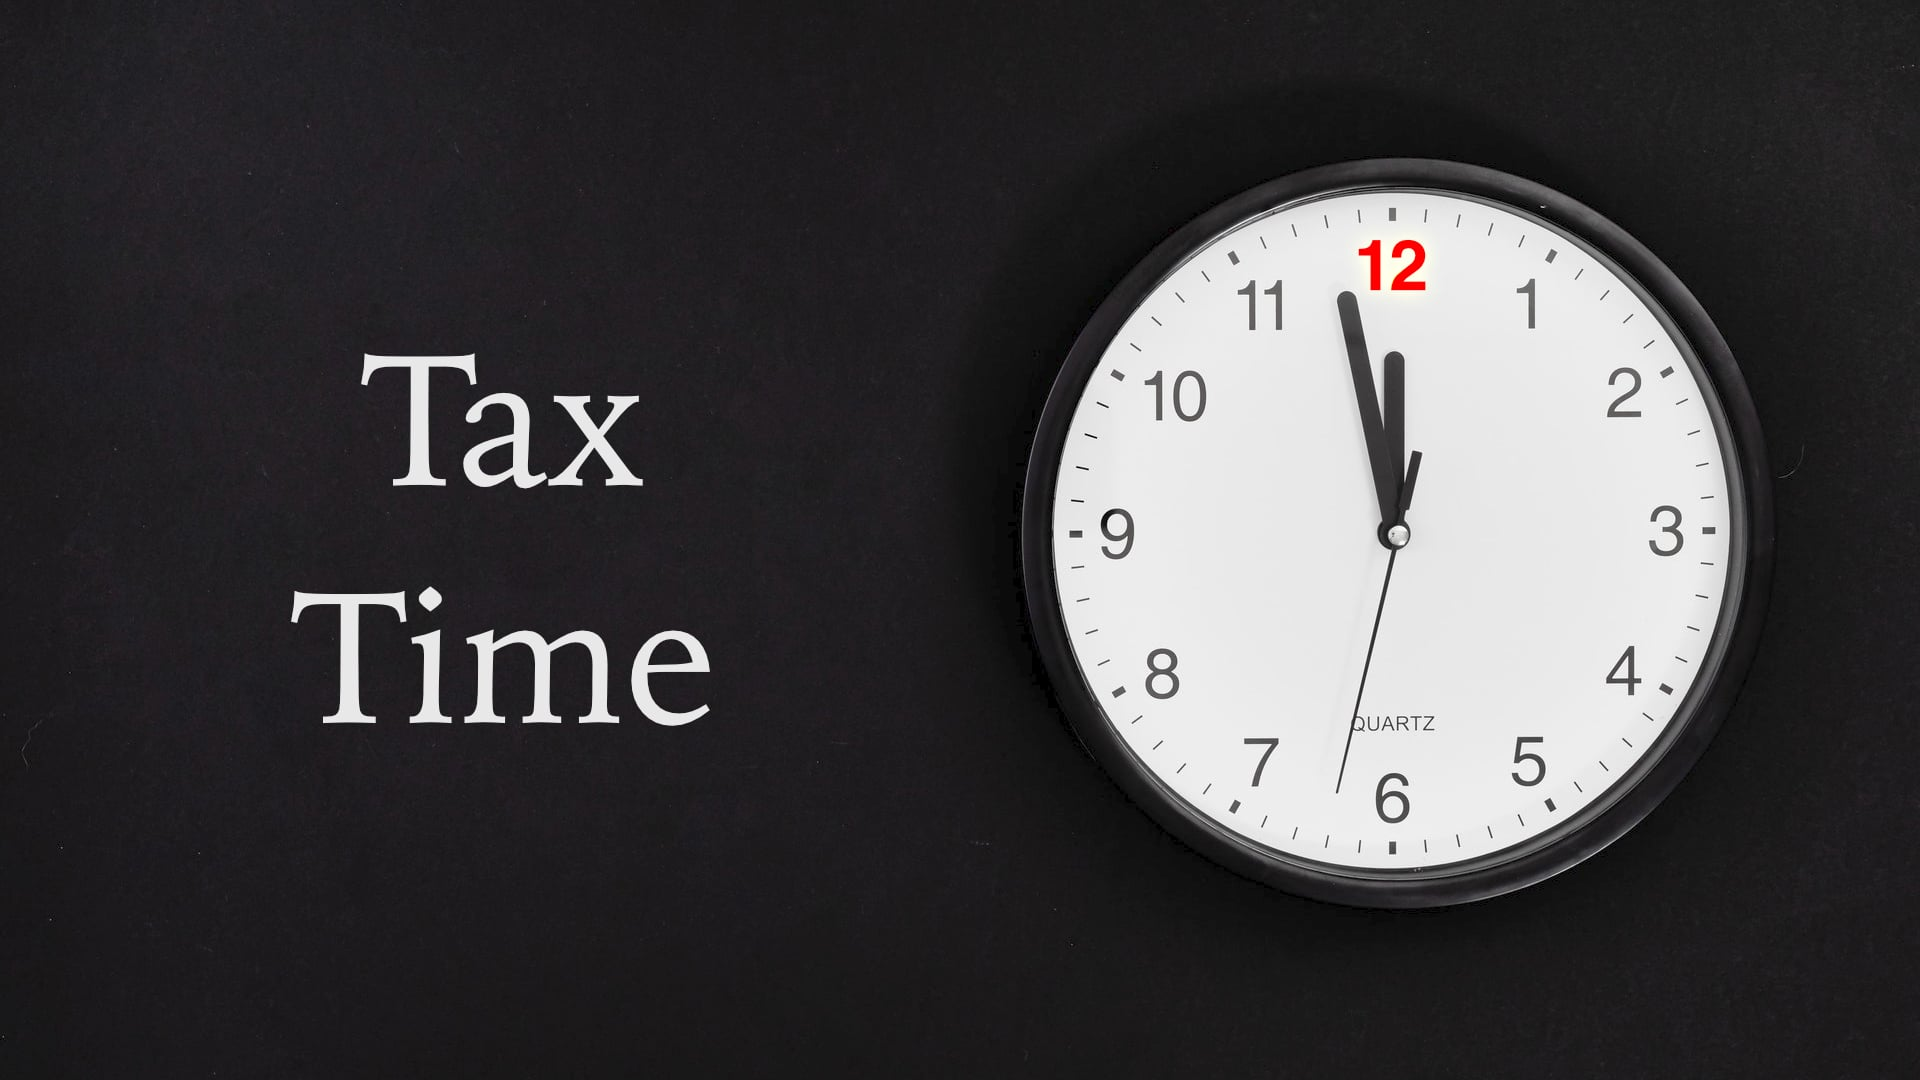 DIGITAL SME welcomes G7 agreement on fairer taxation